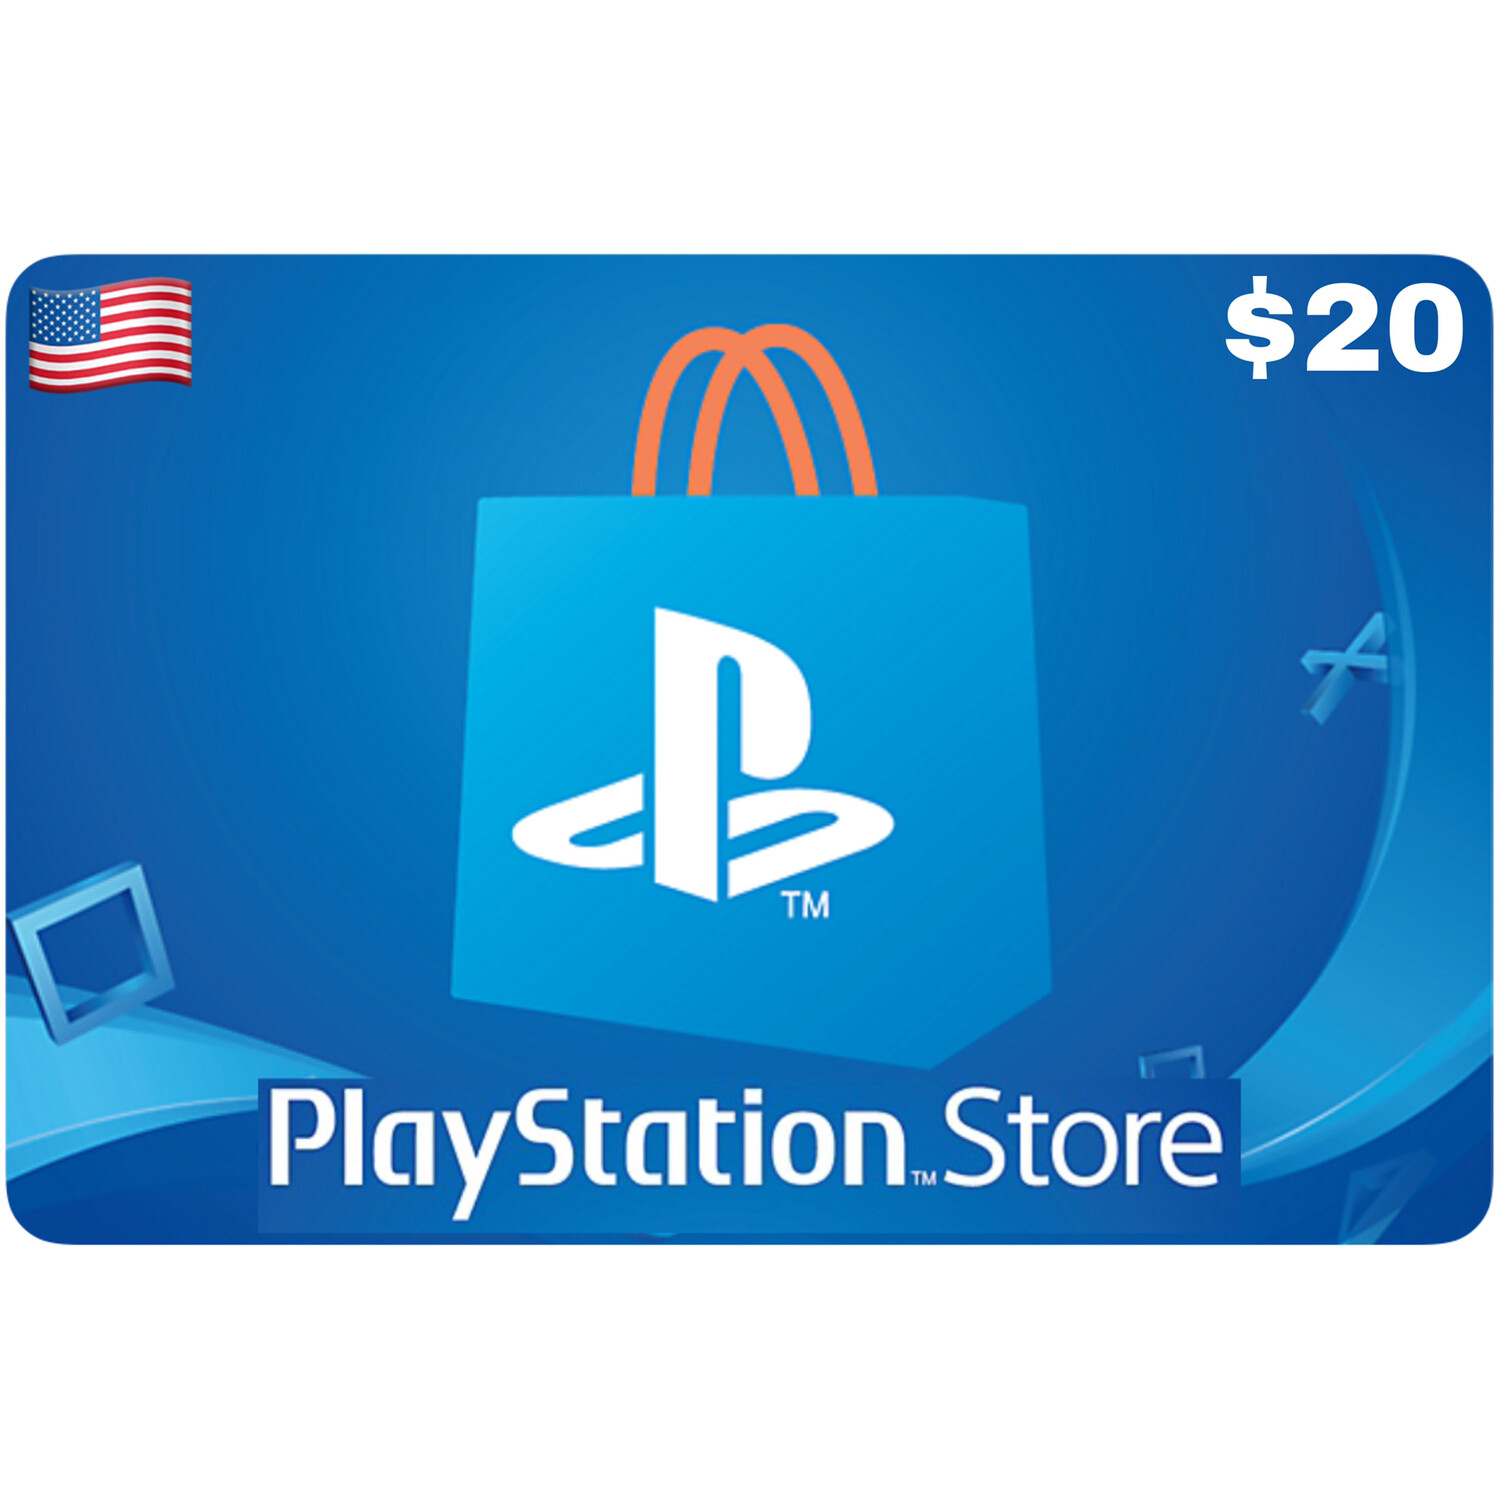 Playstation Store Gift Card US $20